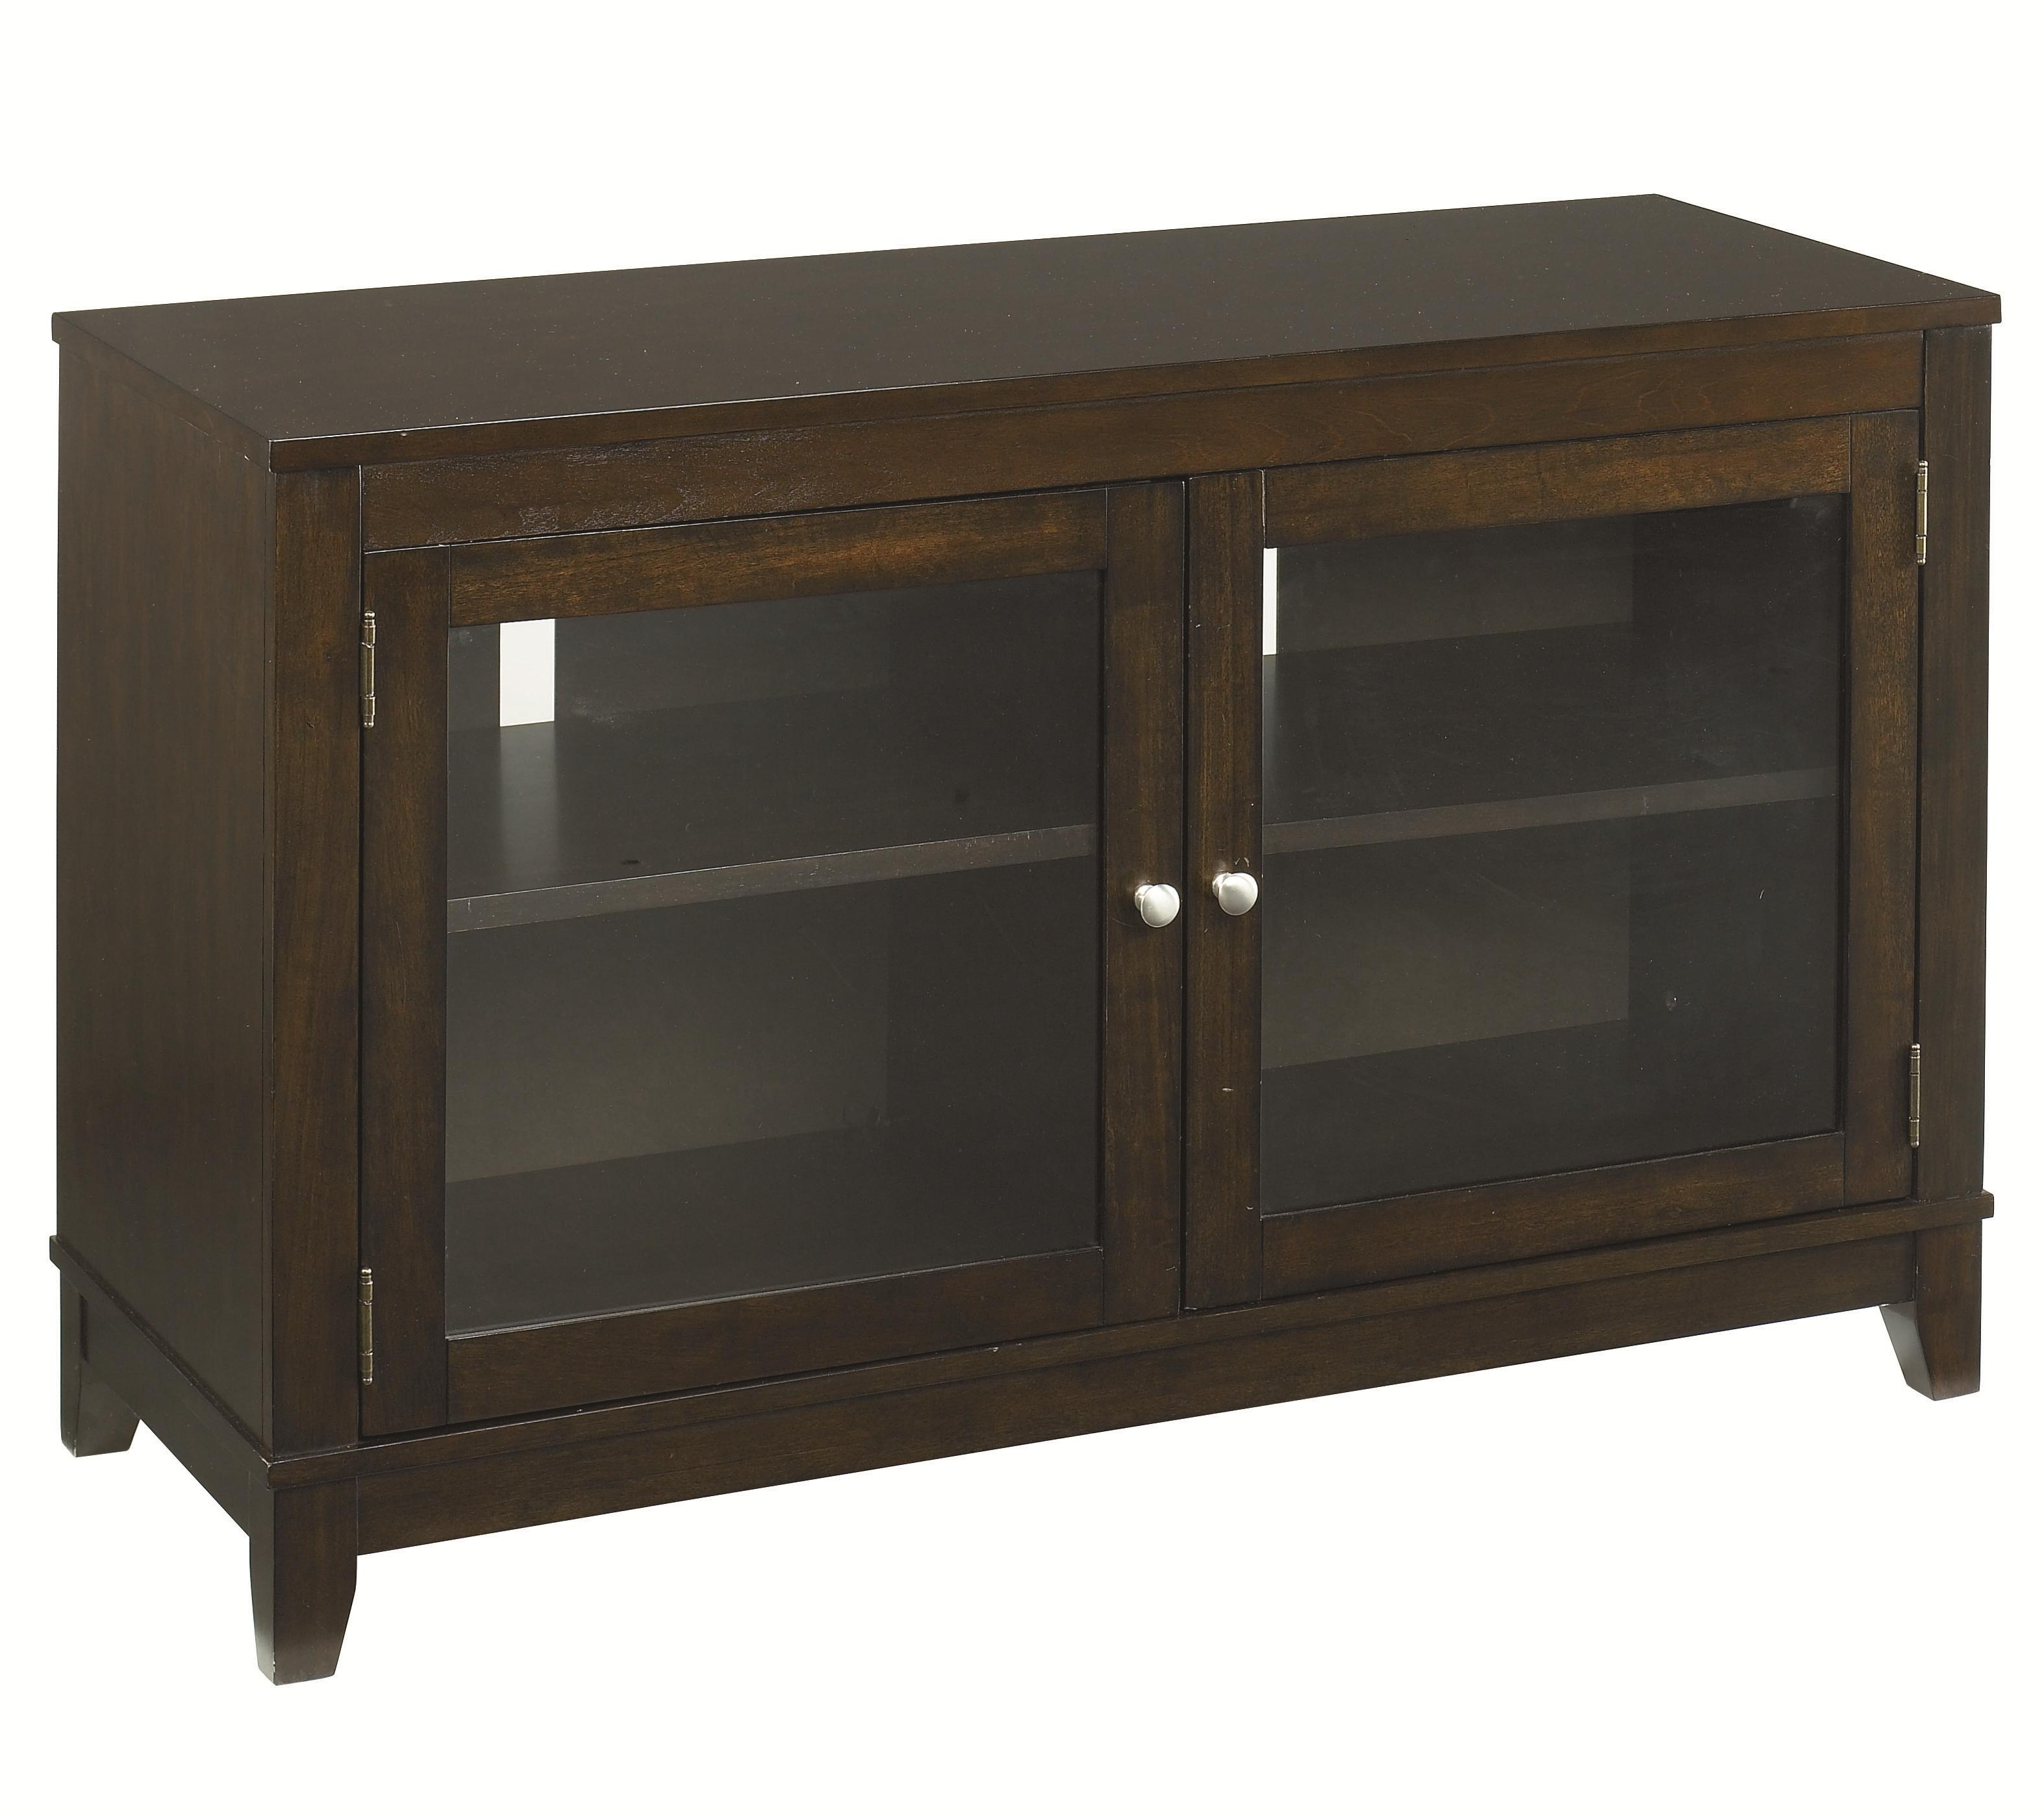 Hammary Hidden Treasures Entertainment Console - Item Number: 090-322